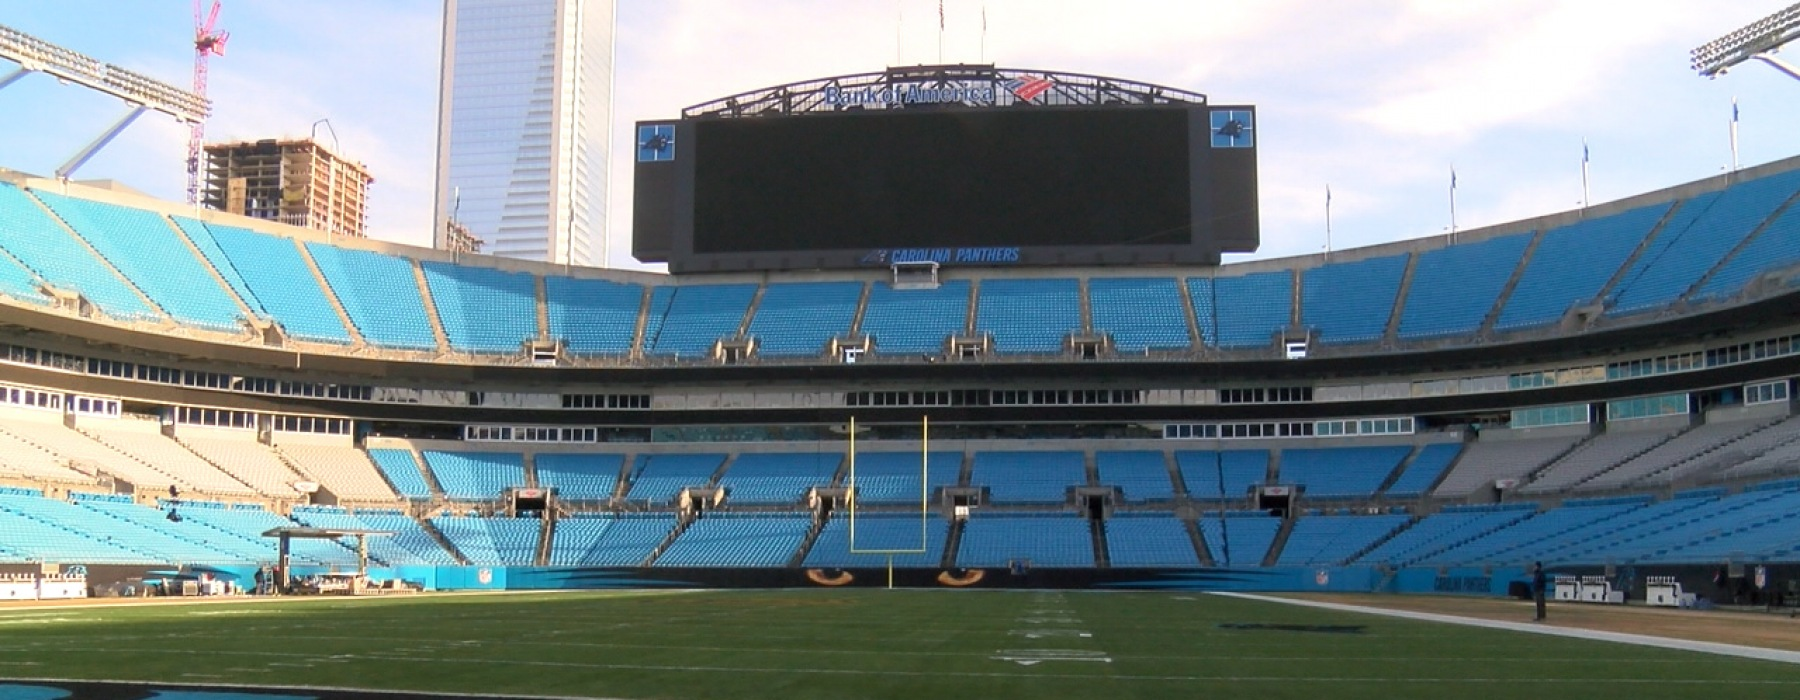 500 West Trade boasts luxury apartments near Bank of America Stadium and is a preferred housing option for the Carolina Panthers.